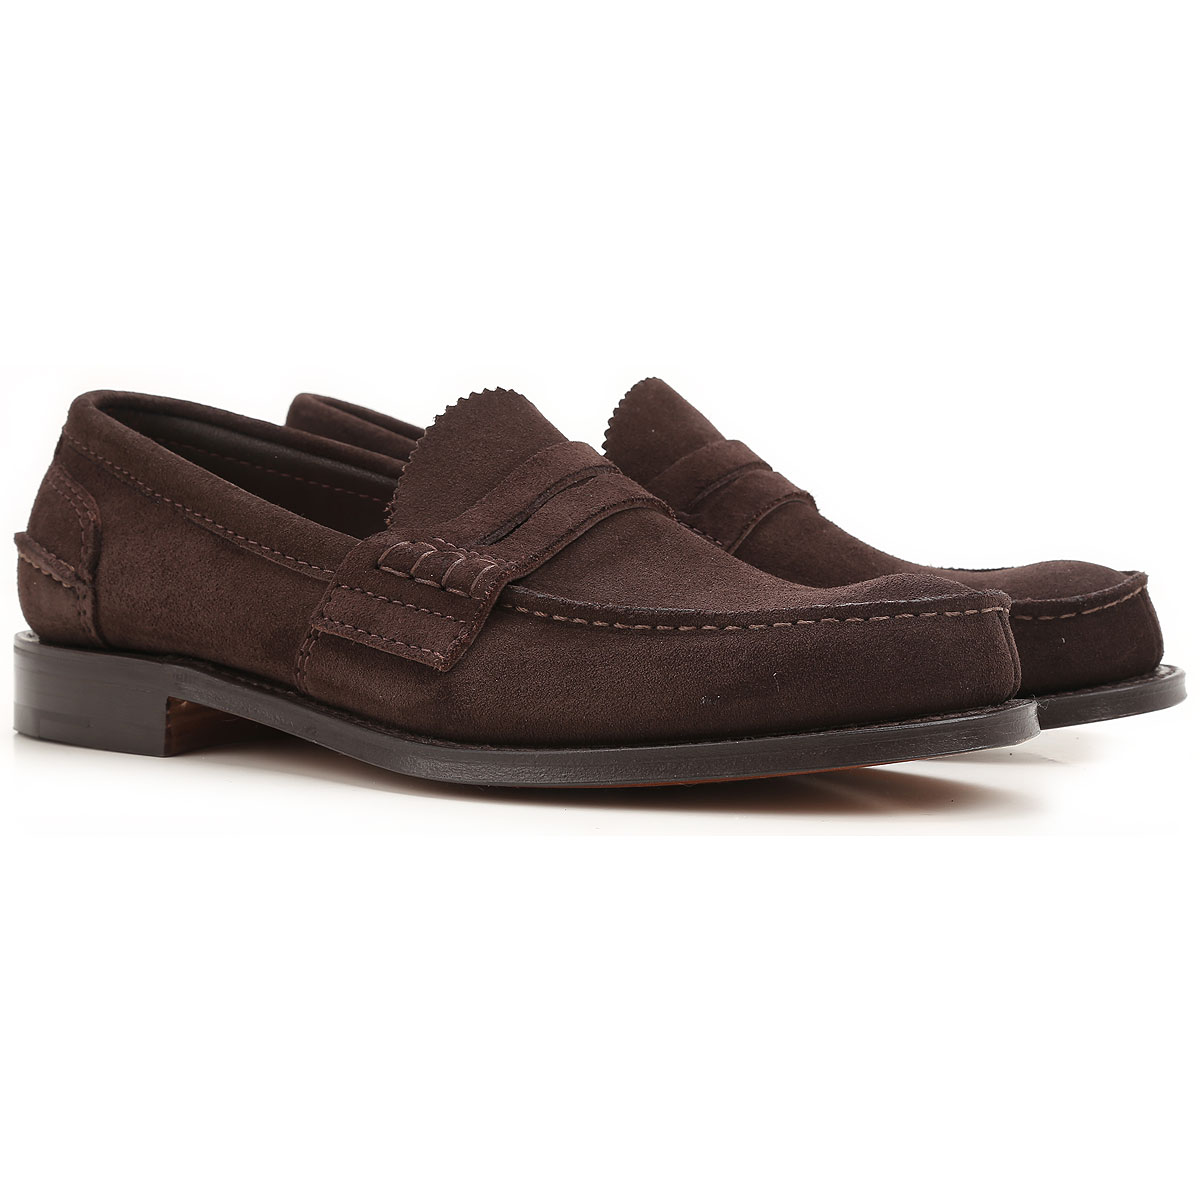 Church's Loafers for Men Brown USA - GOOFASH